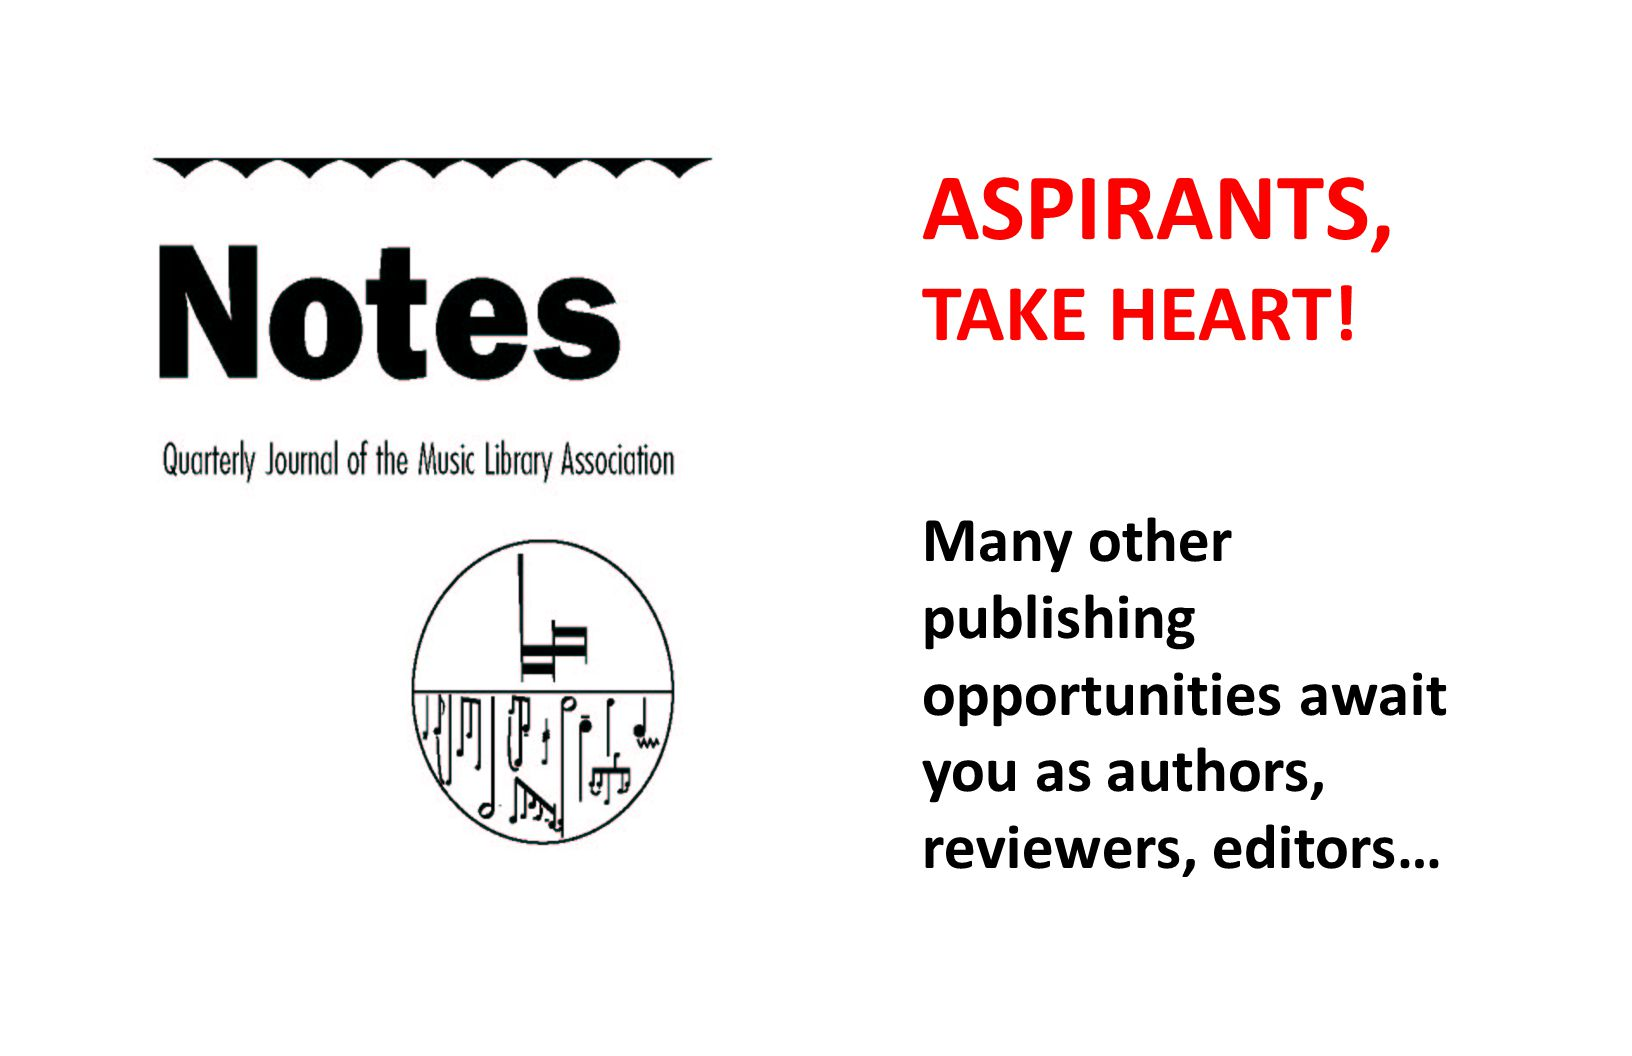 ASPIRANTS, TAKE HEART! Many other publishing opportunities await you as authors, reviewers, editors…